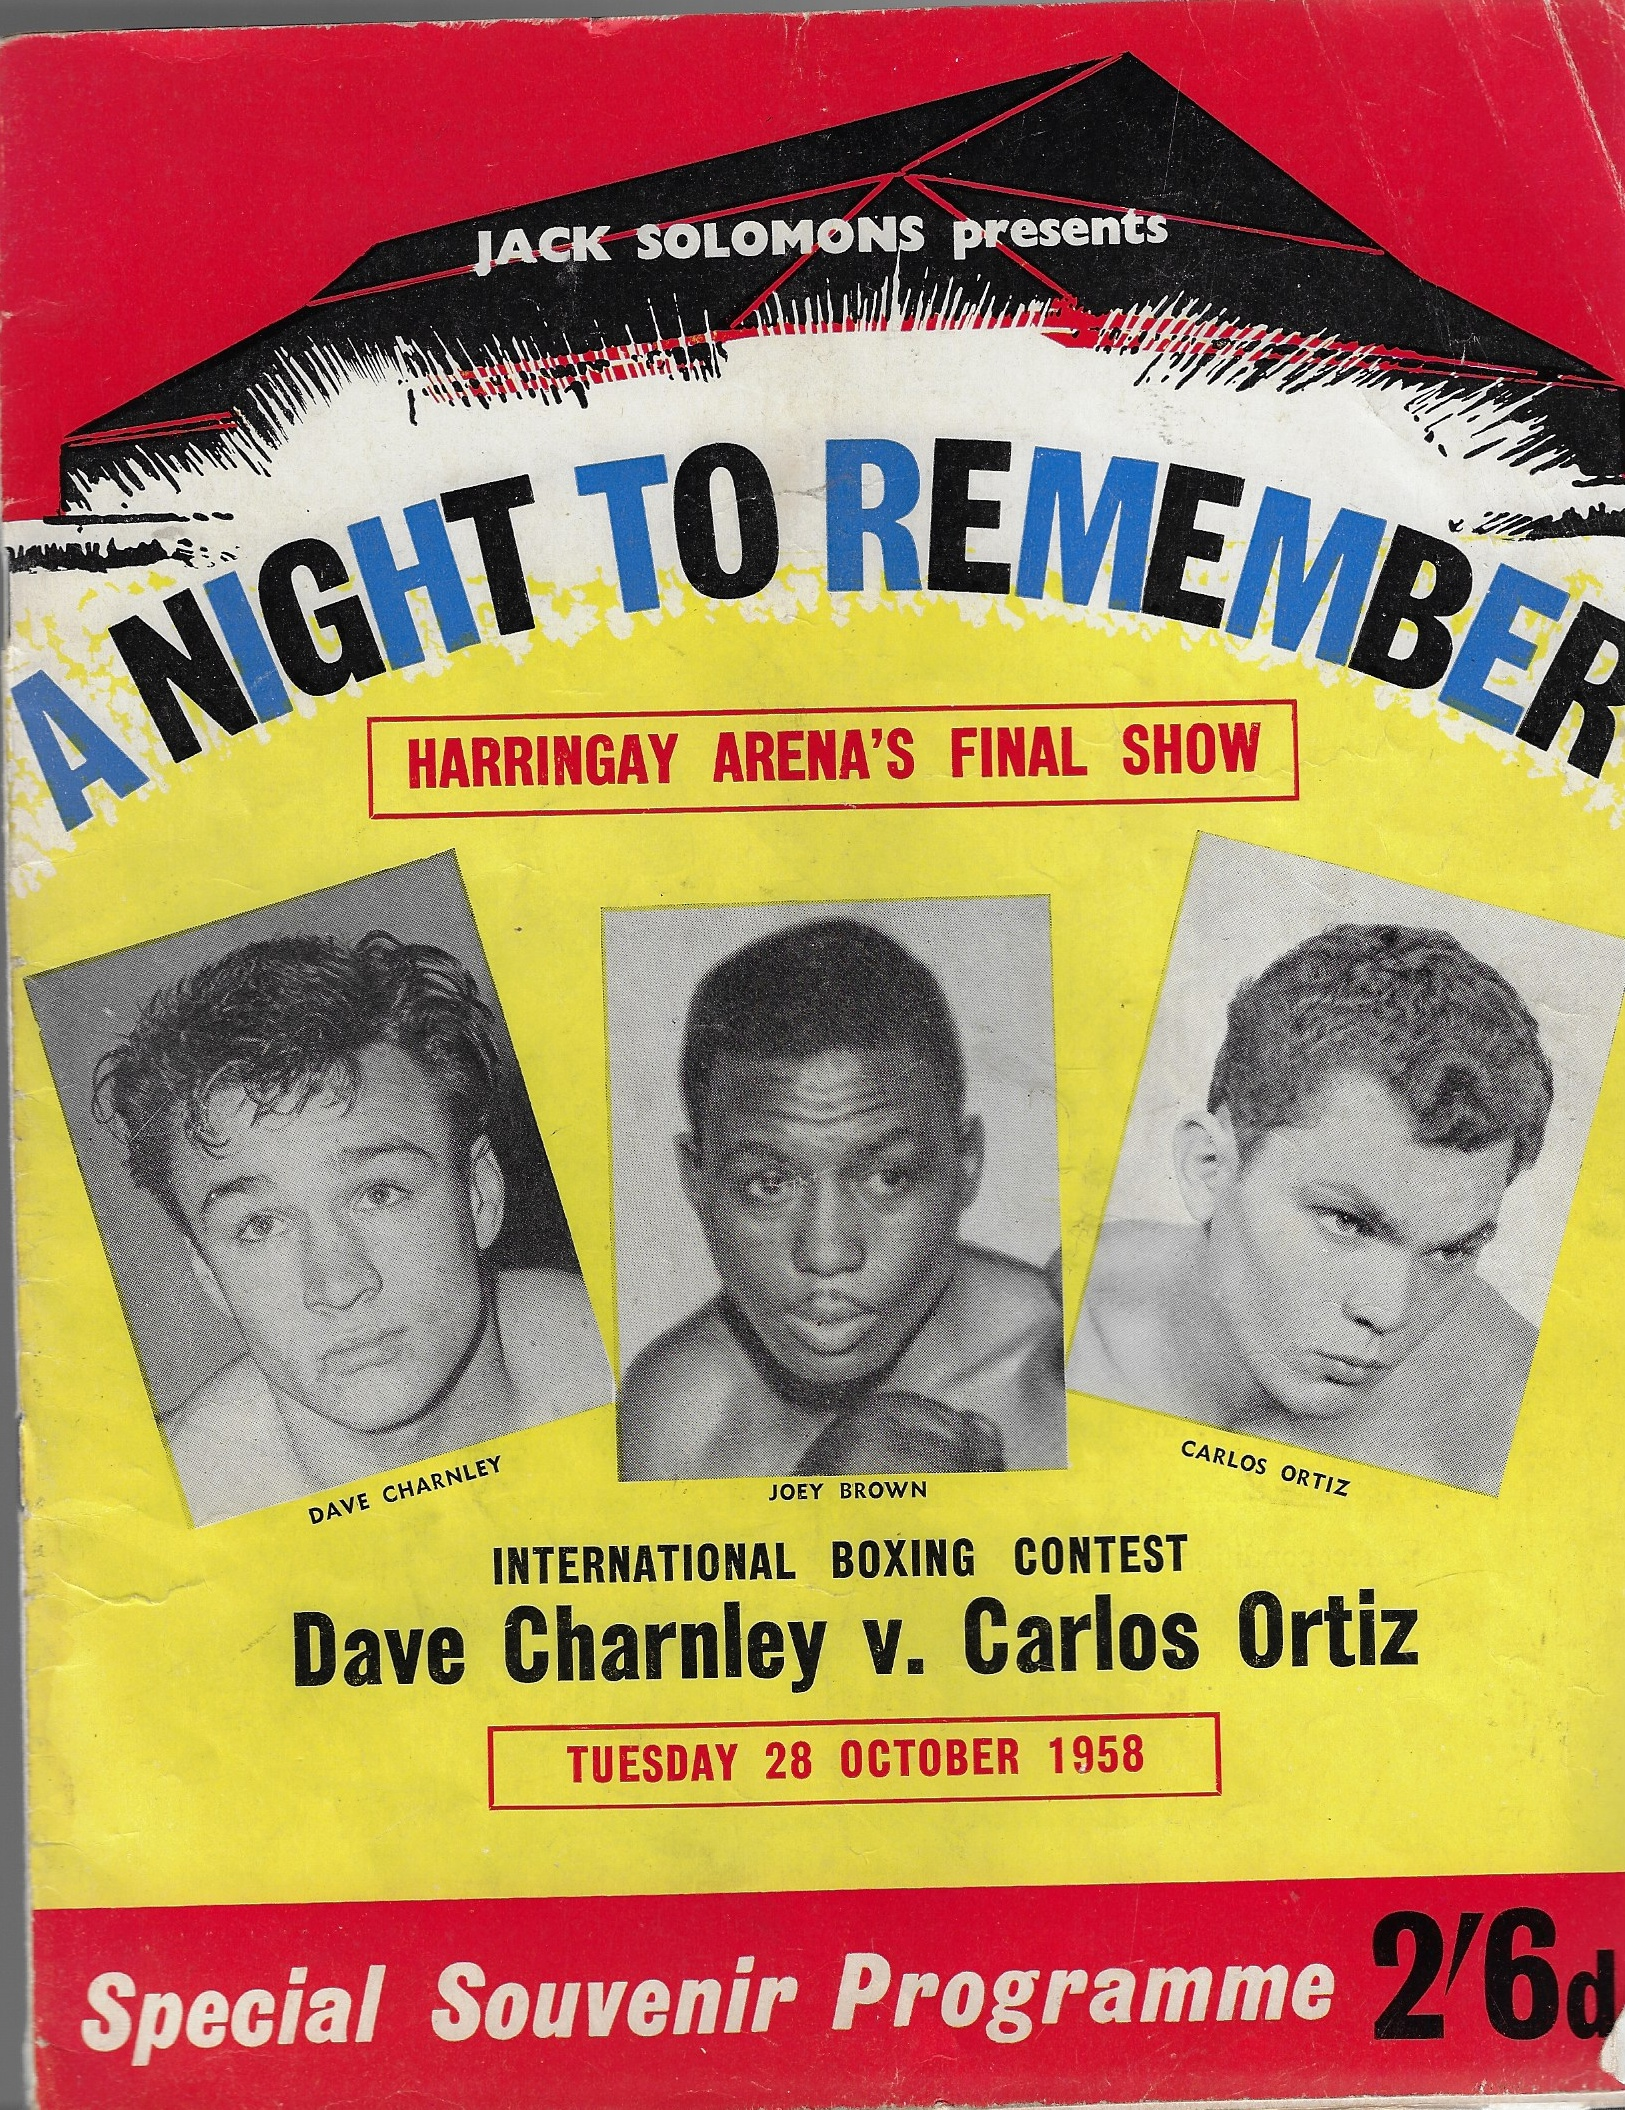 Image for Special Souvenir Boxing Program, 'A Night to Remember' Dave Charnley v. Carlos Ortiz; Dick Richardson v. Garvin Sawyer; Nosher Powell v. Basil Kew,  plus 4 other bouts,  28 October 1958. Tuesday 28th October 1958, Haringay Arena's Final Show